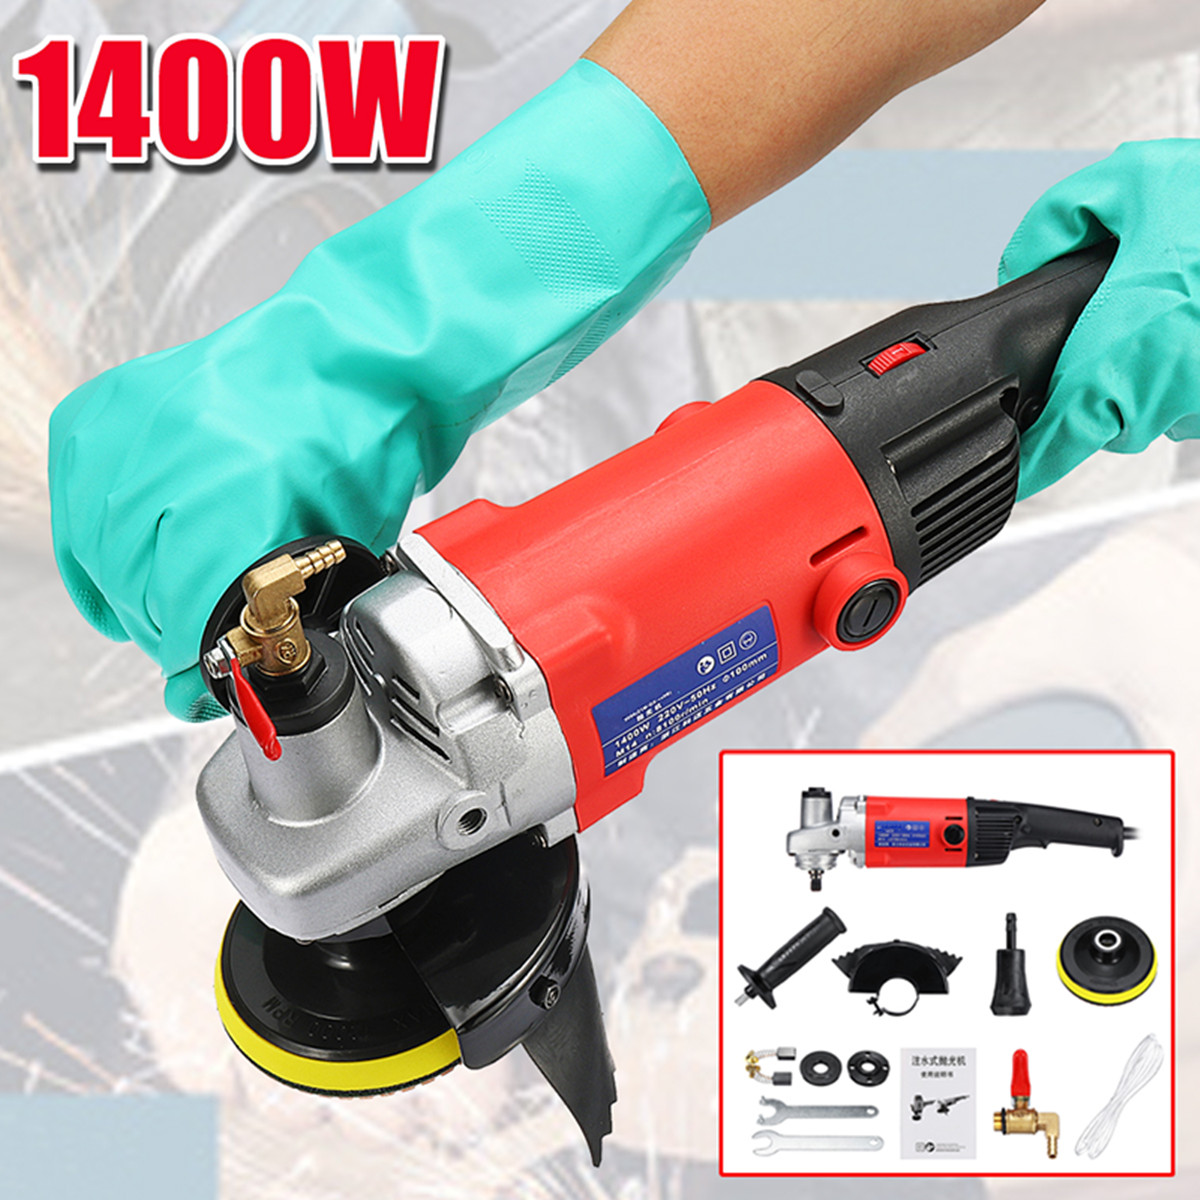 Drillpro 1400W Polisher Grinder Diamond Polishing pads Angle Grinder For Concrete Marble Granite with Gloves Power Tools